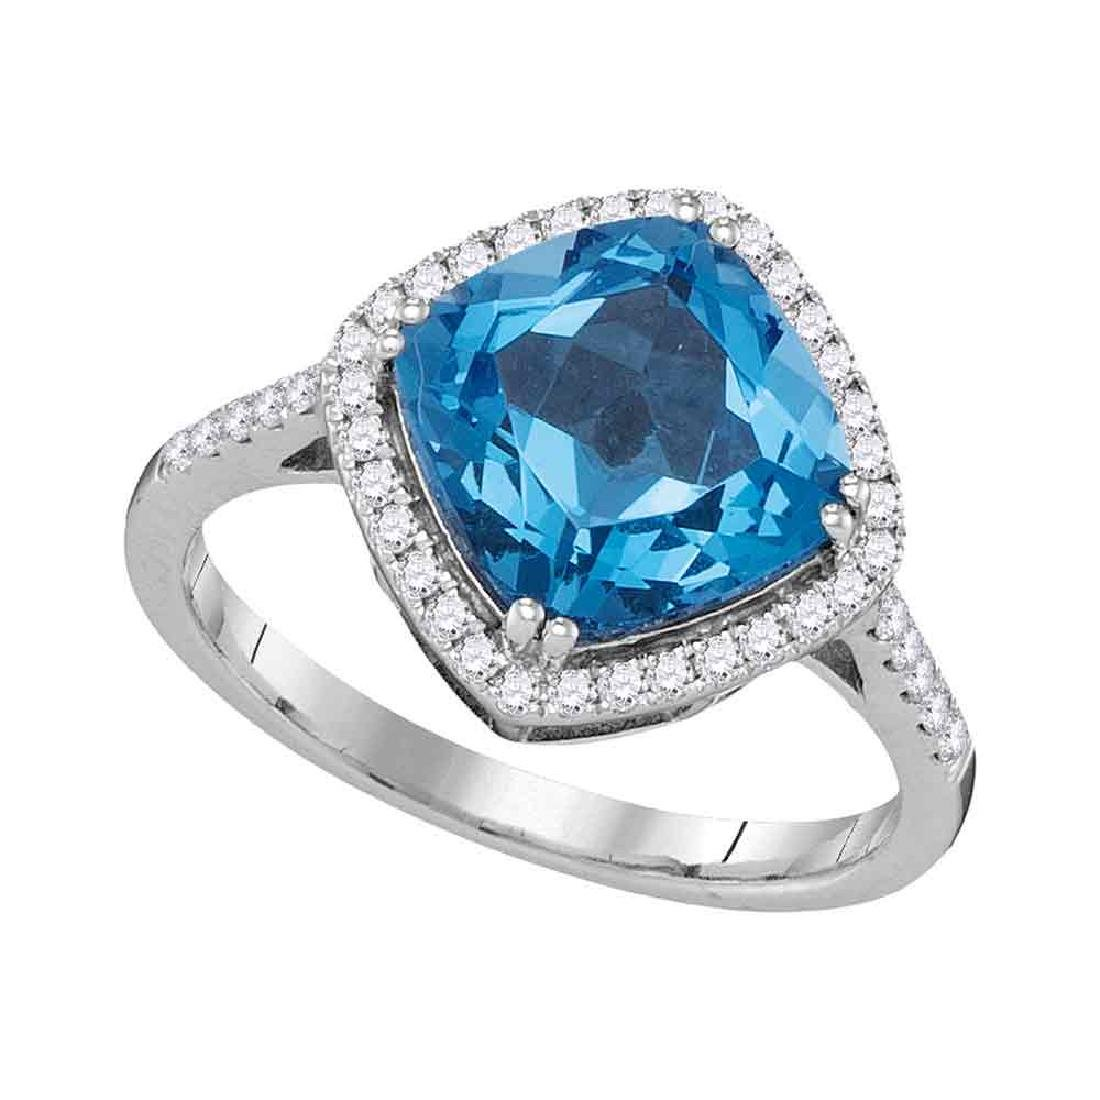 3.89 CTW Cushion Blue Topaz Solitaire Diamond Halo Ring